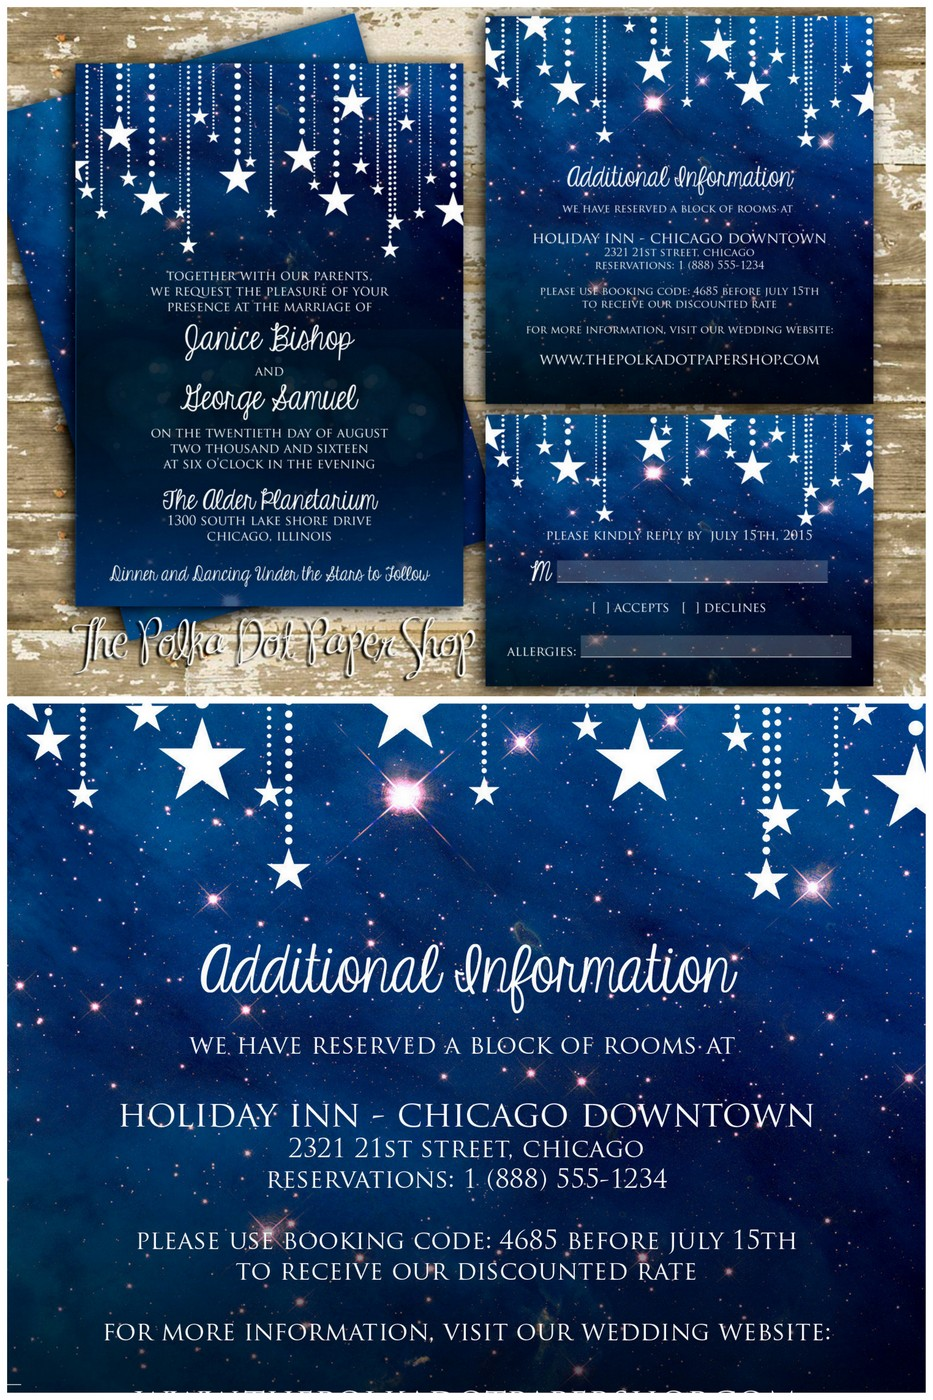 16 Starry Night Celestial Wedding Invitations To Light Up